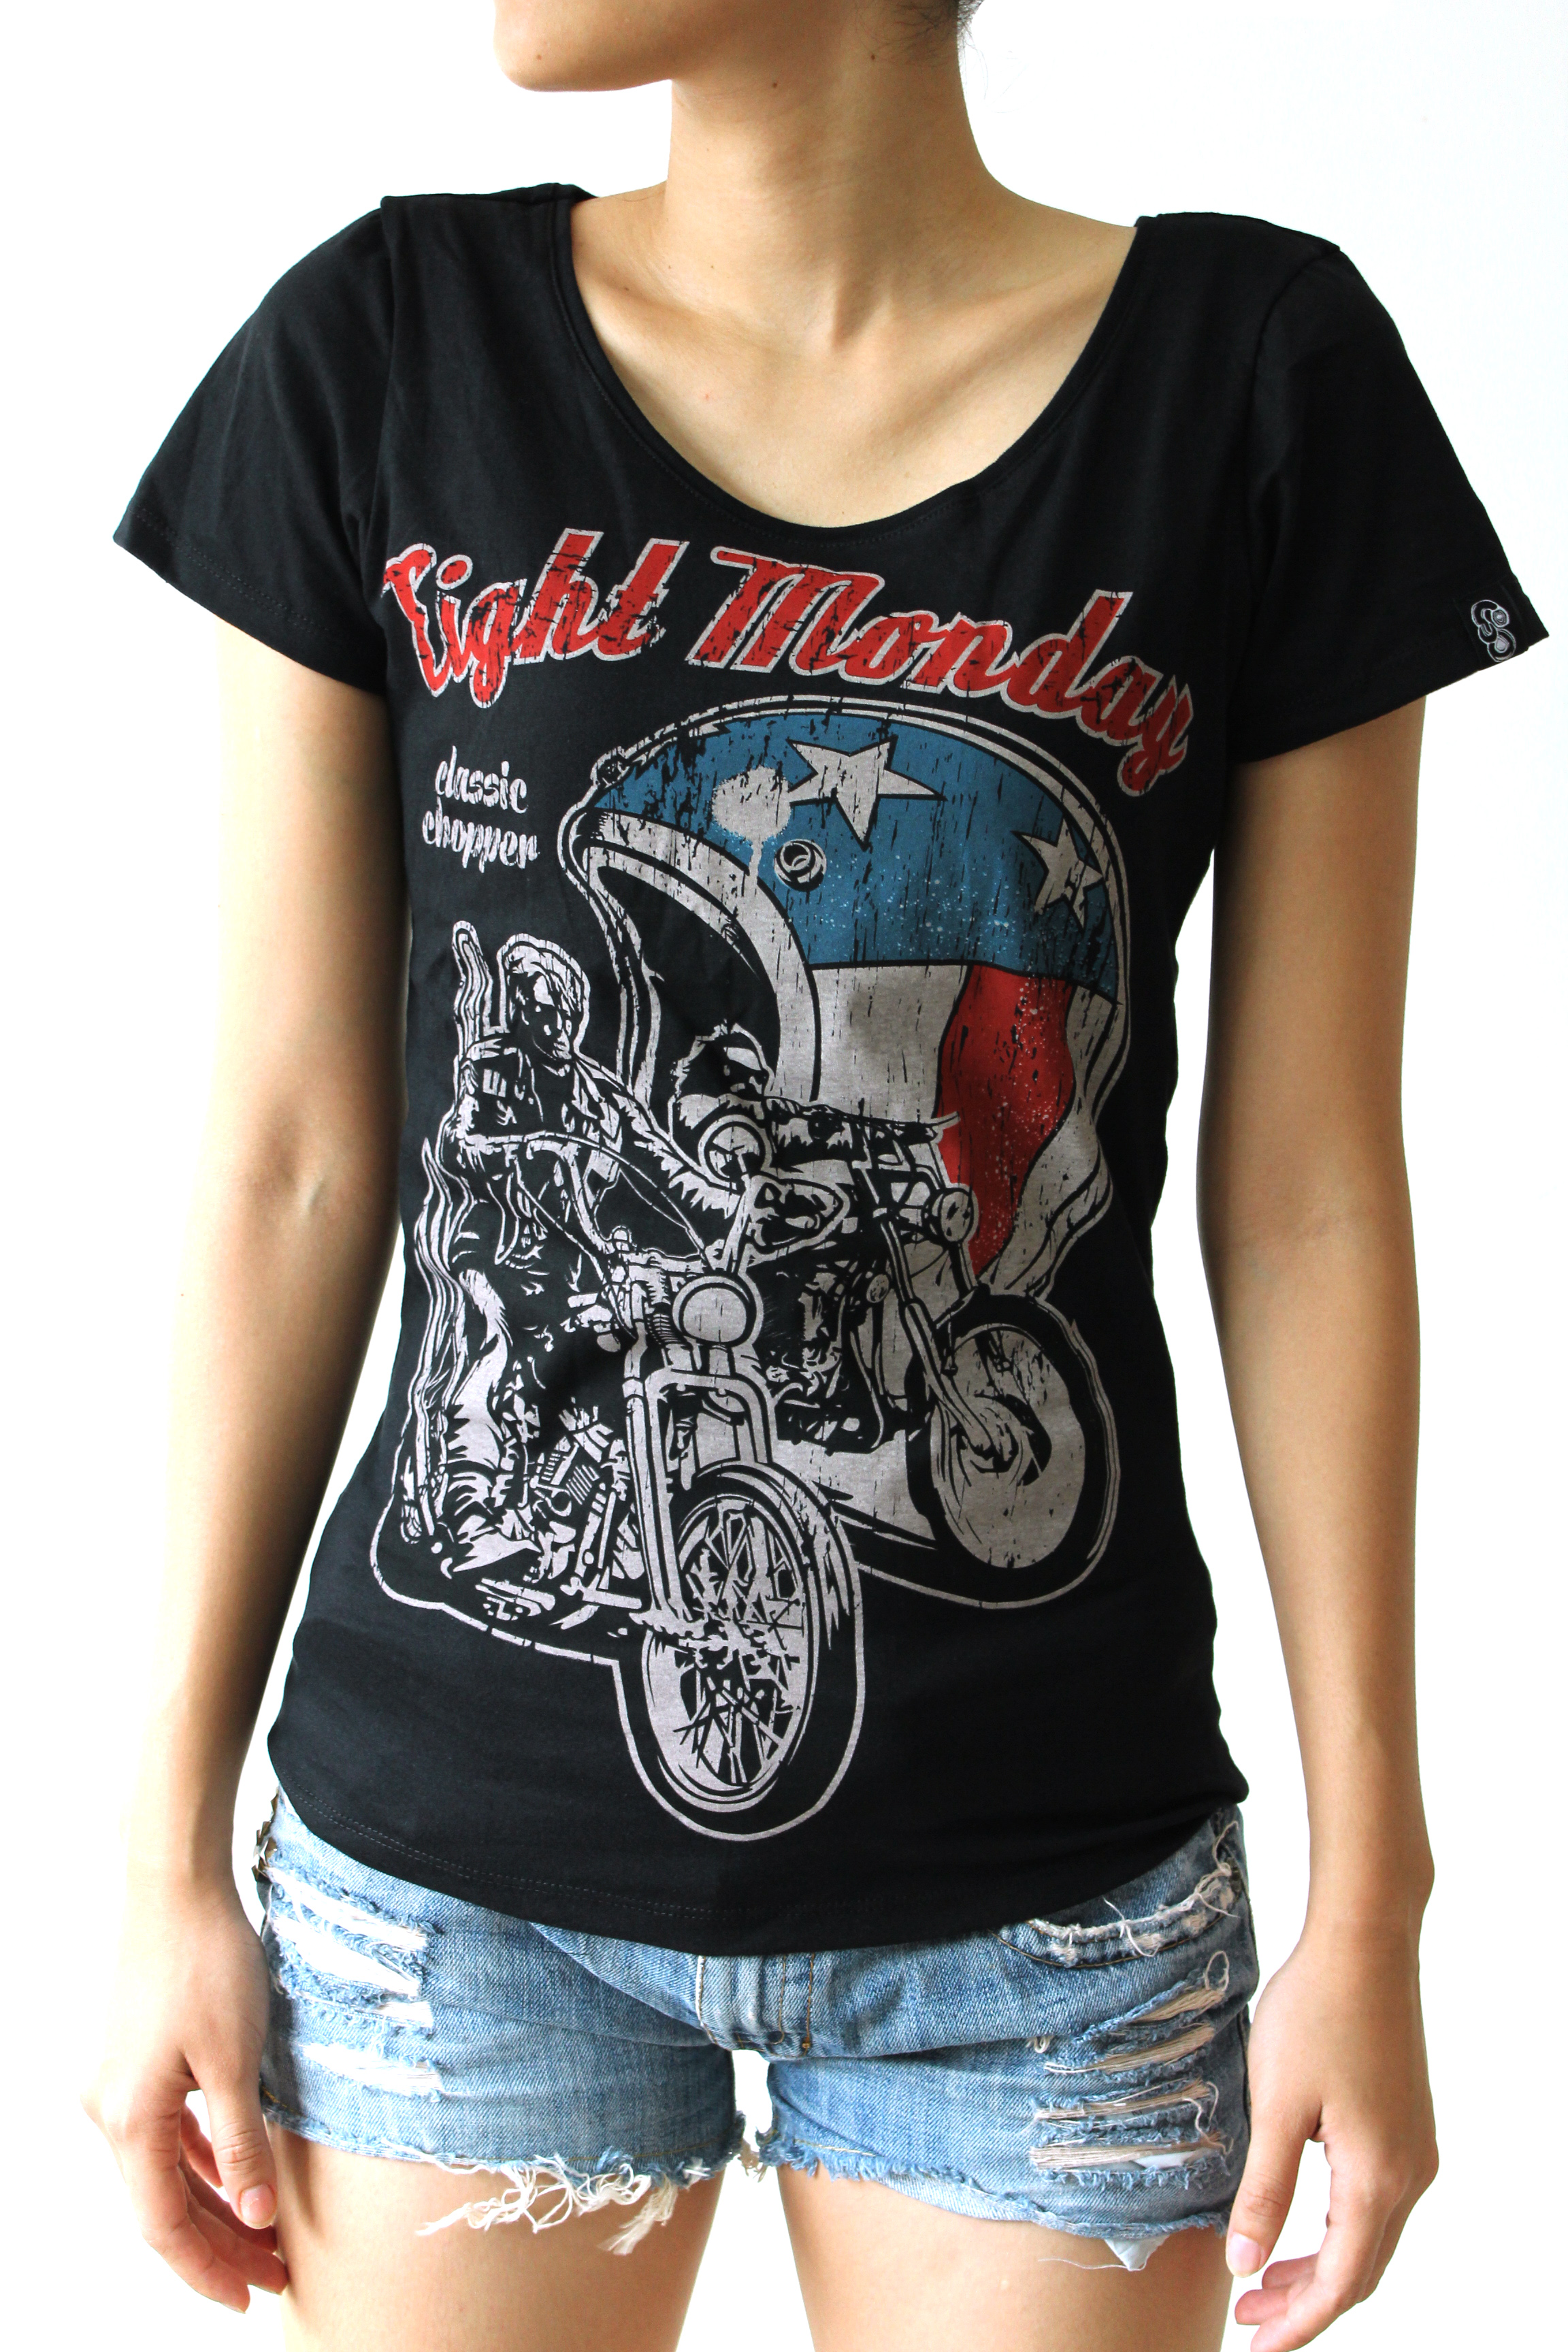 eight_monday_rockabilly_vintage_cafe_racer_west_coast_chopper_motorcycle_e1_t_shirts_3.jpg